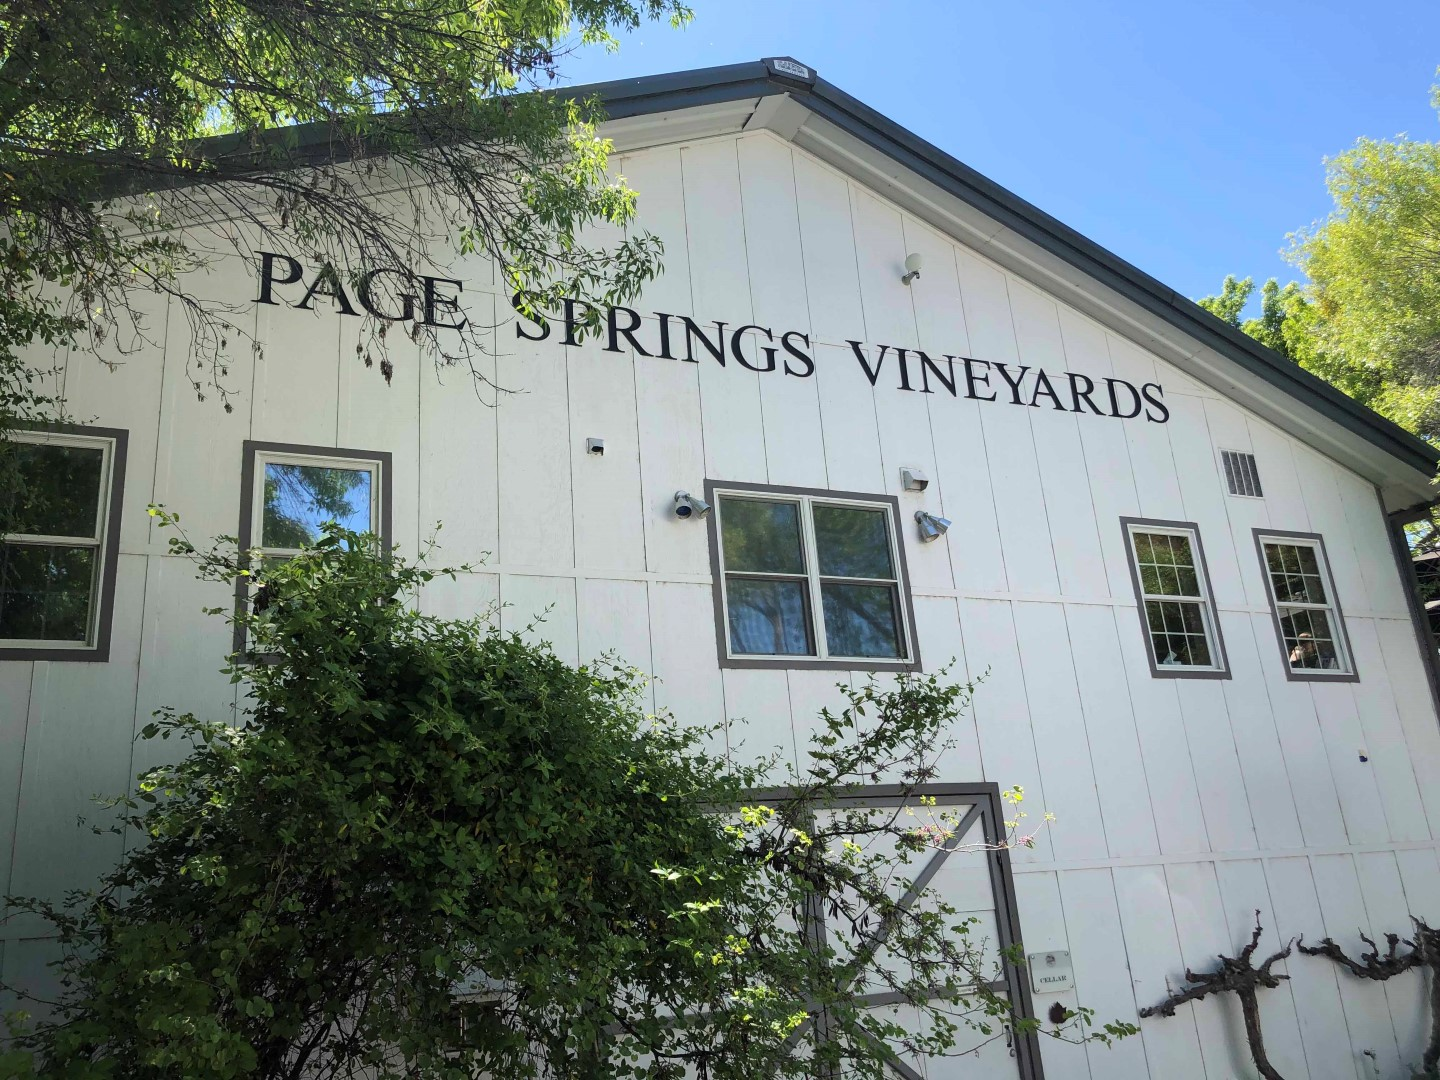 Page Springs Vineyards (Photo by Sarah Cribari )